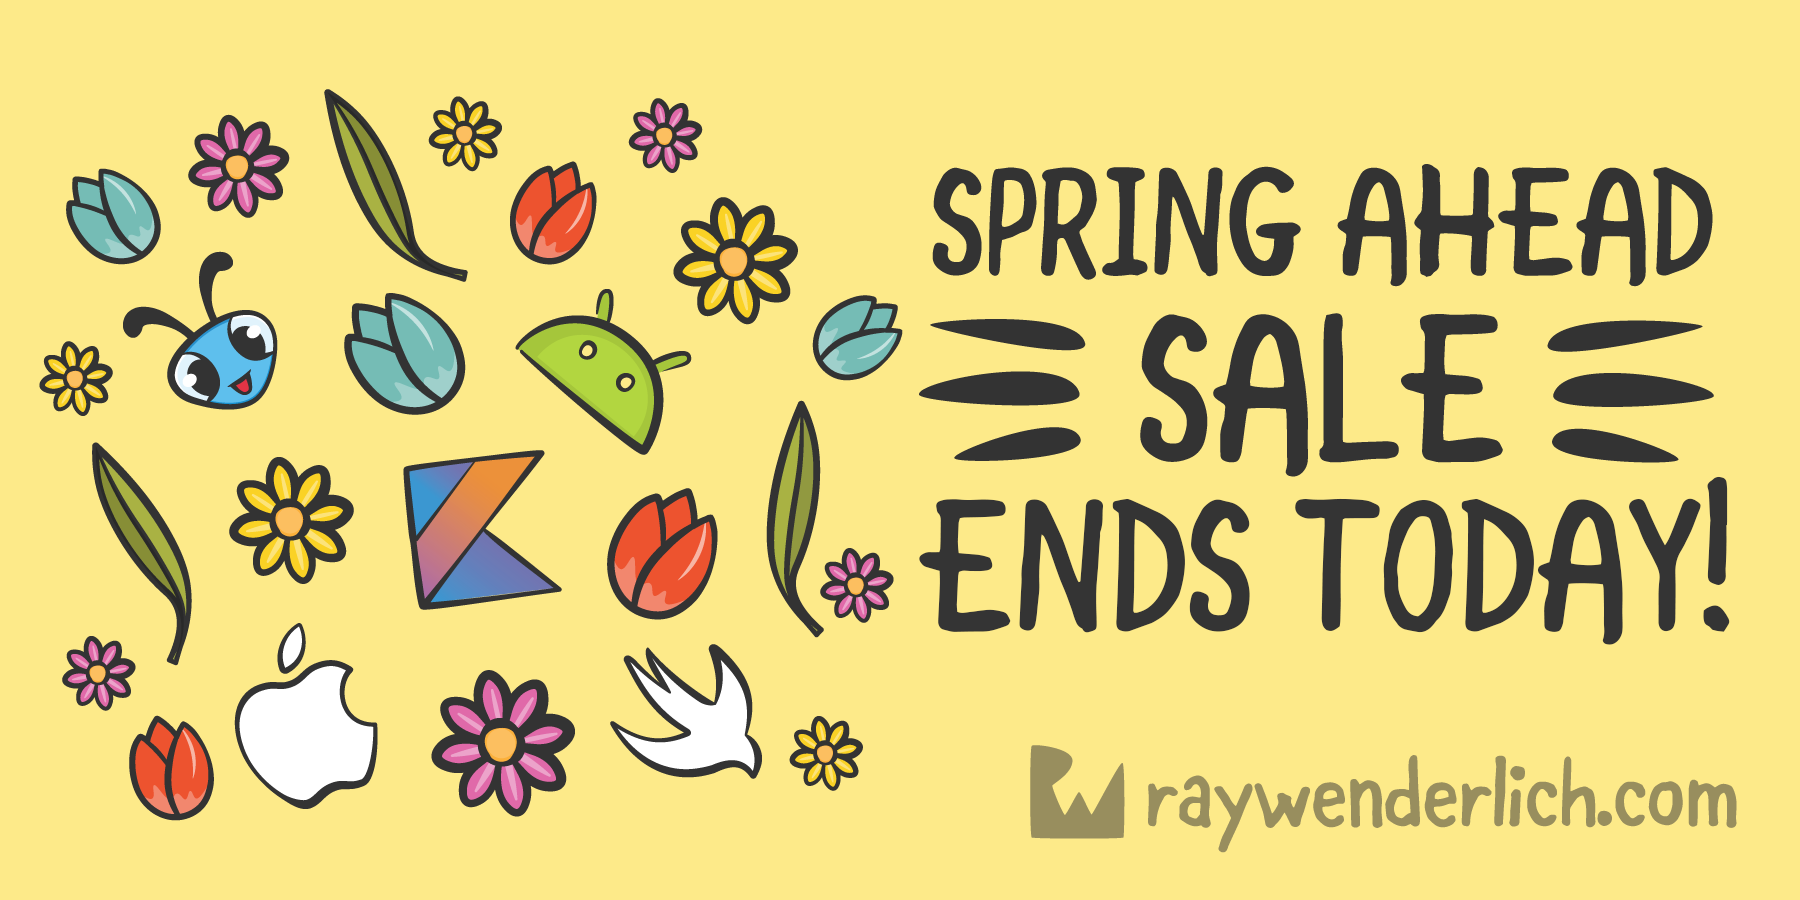 Spring Ahead Sale — Final Hours to Save 50% on Everything [FREE]